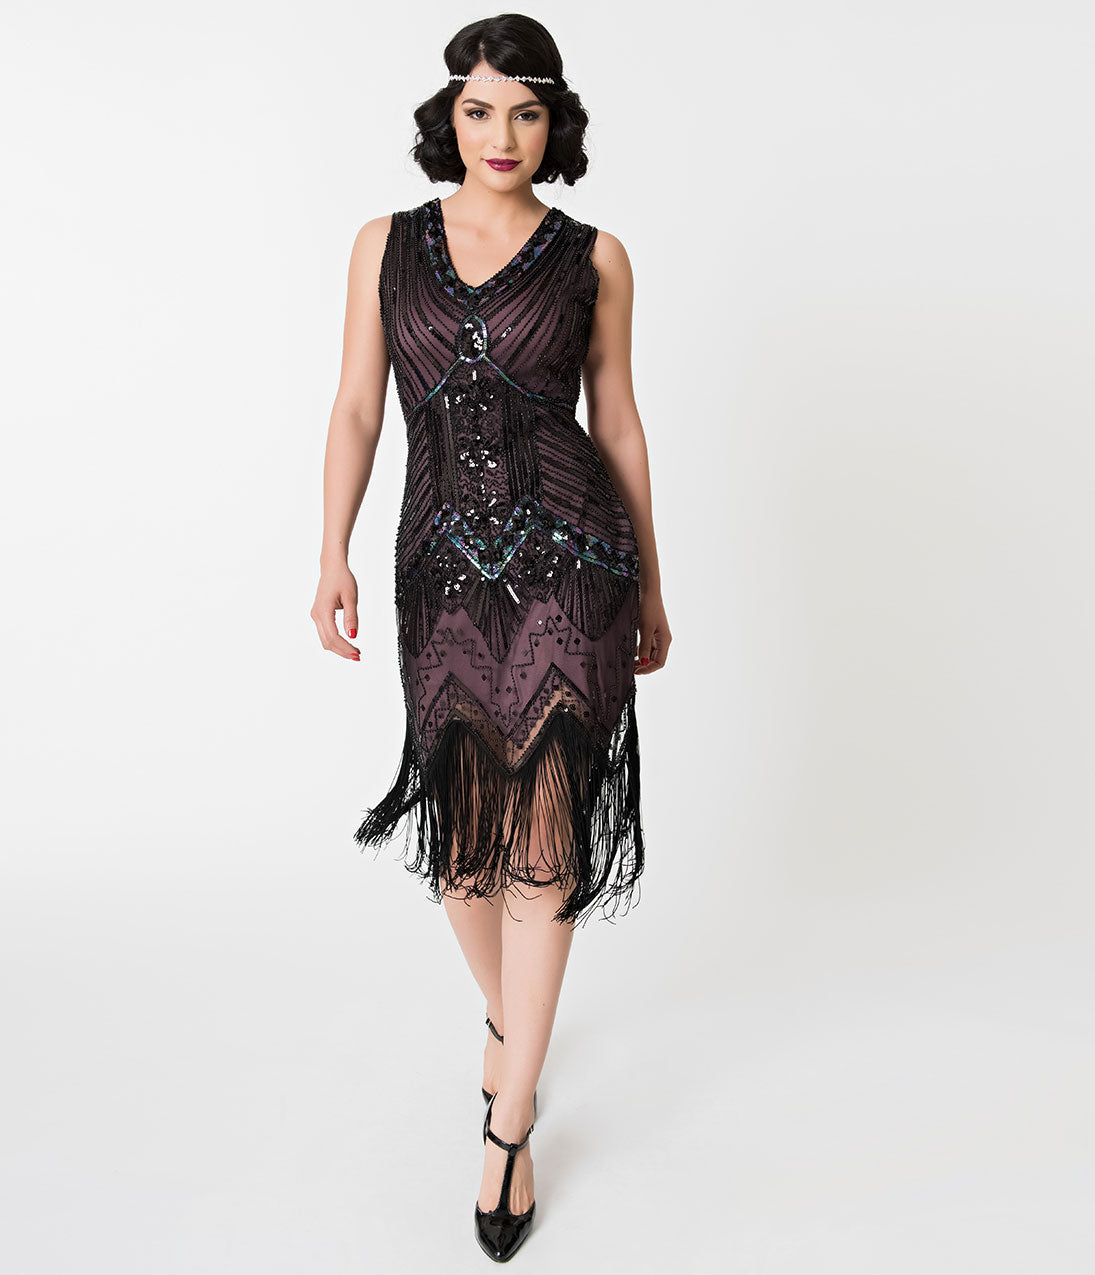 Vintage Evening Dresses and Formal Evening Gowns Unique Vintage 1920S Deco Purple  Black Sequin Veronique Fringe Flapper Dress $98.00 AT vintagedancer.com